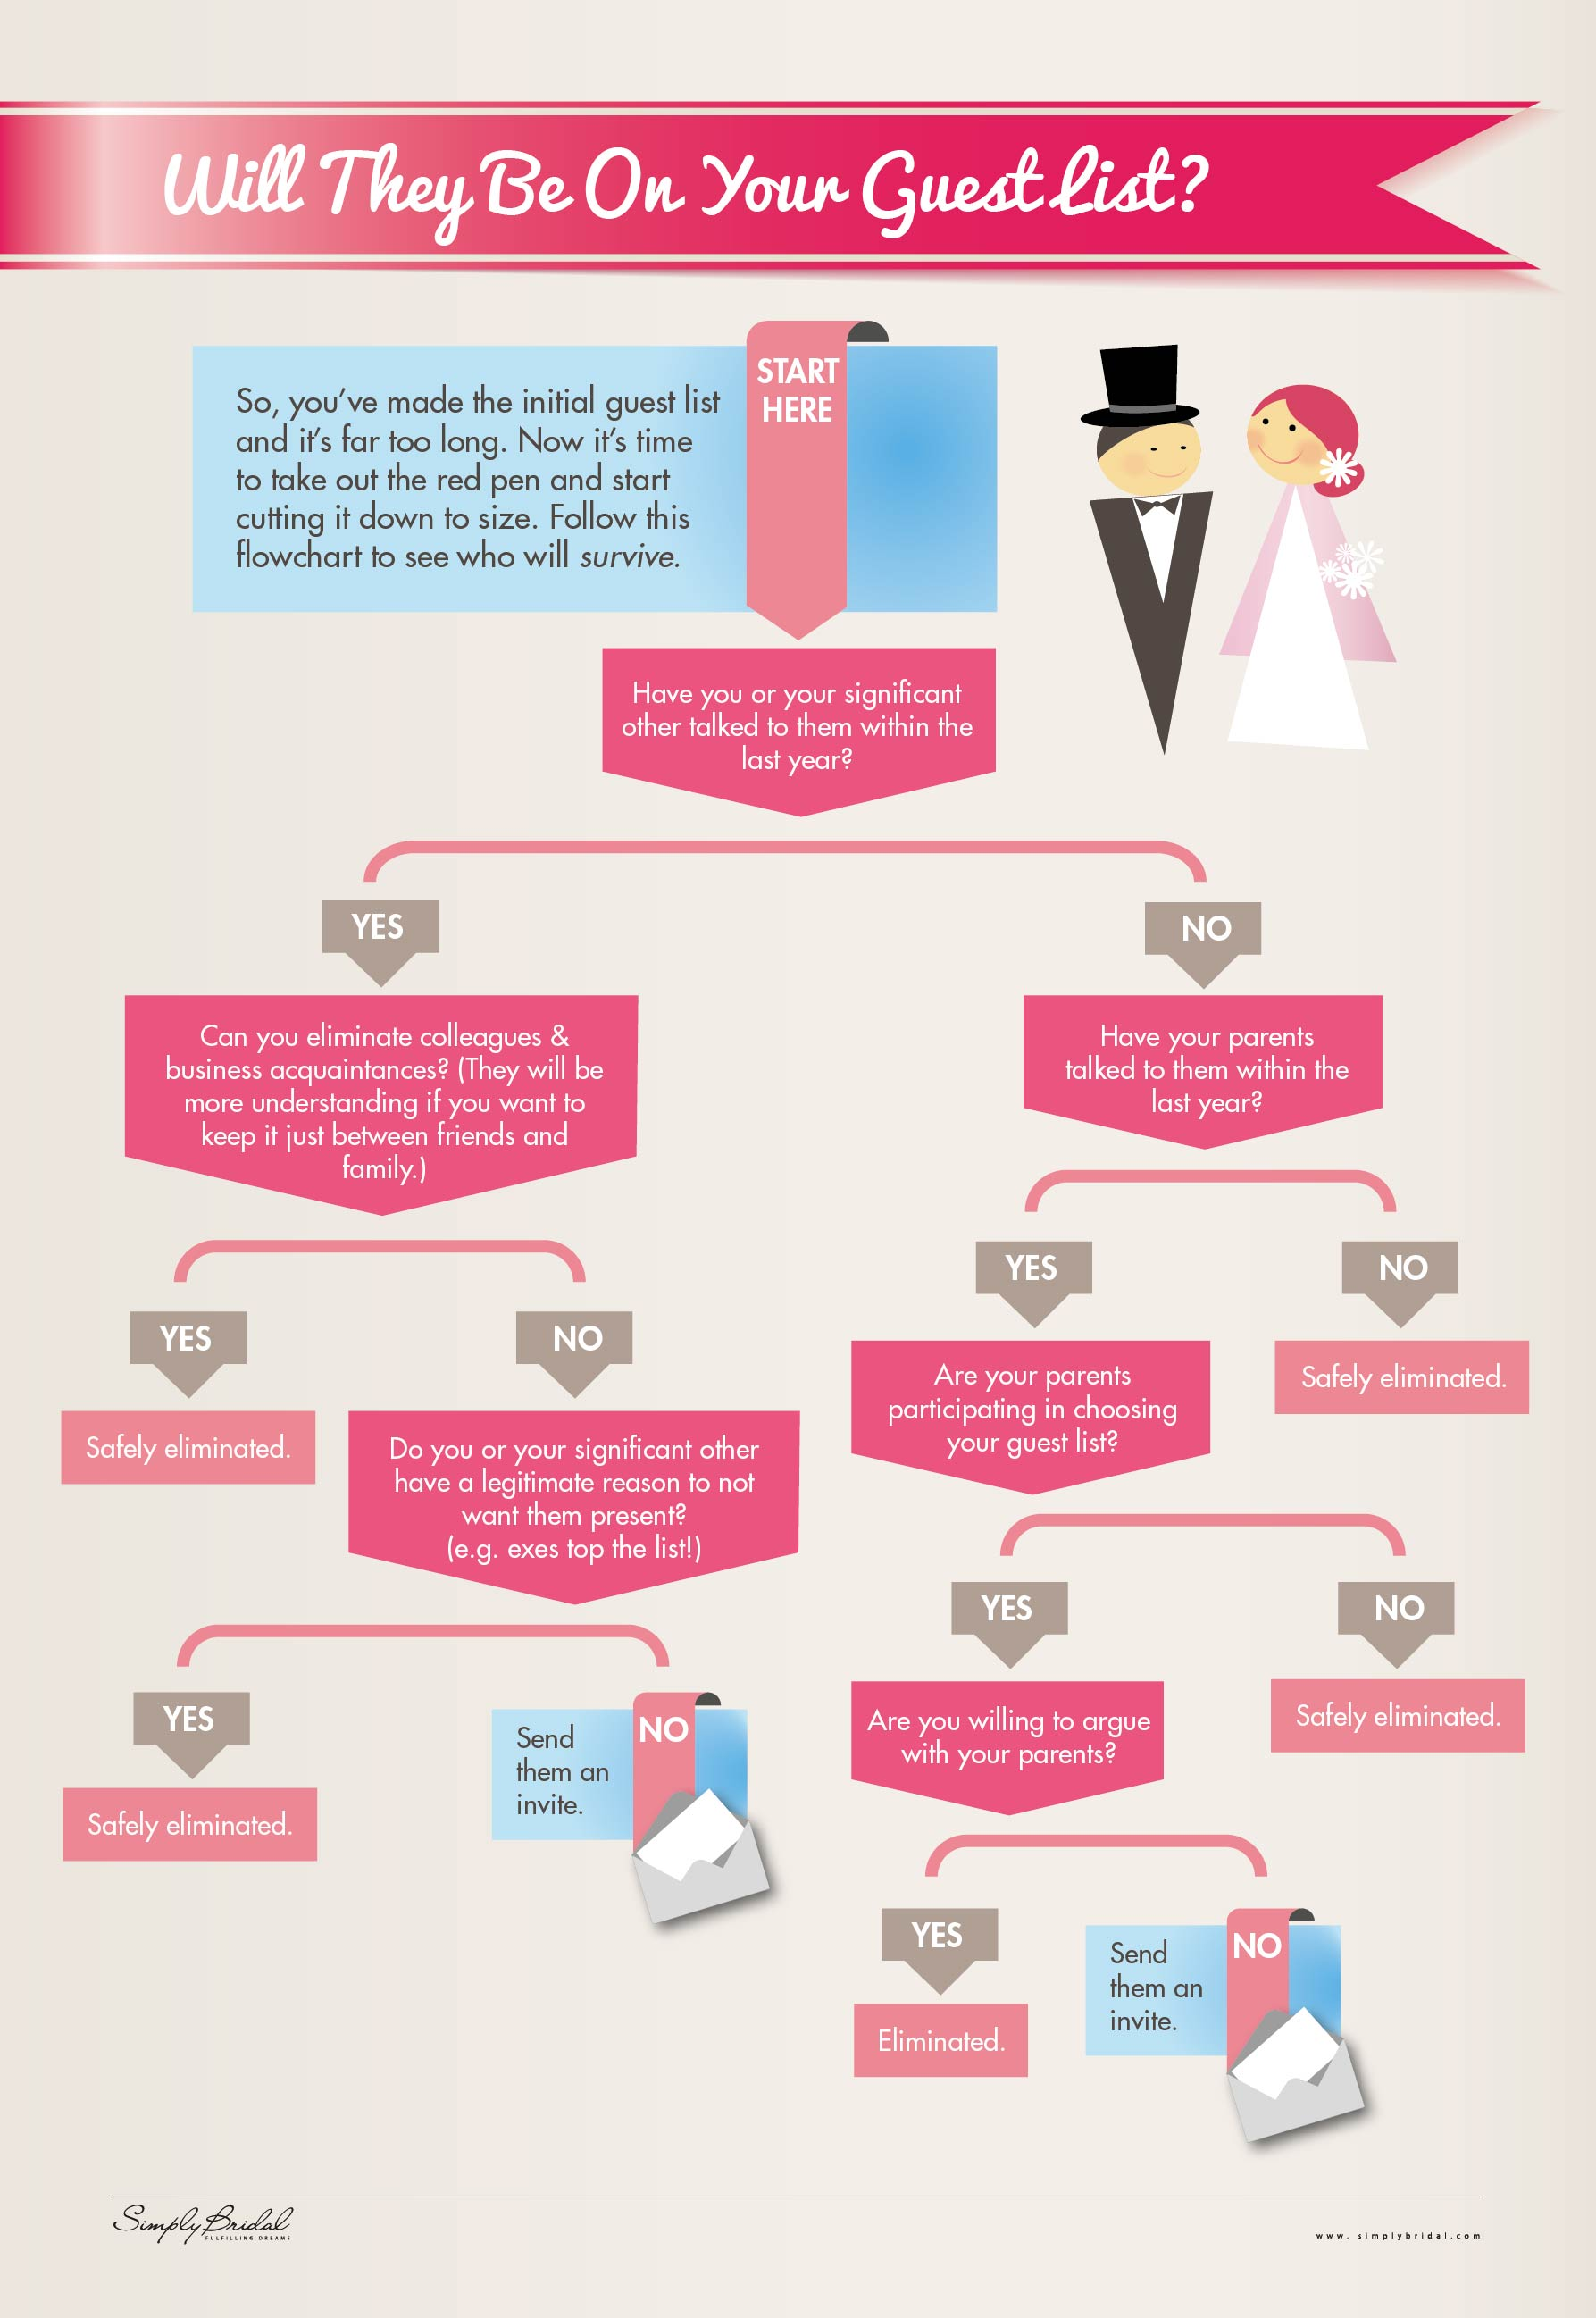 Wedding Guest List: How To Decide Who Gets An Invite | HuffPost